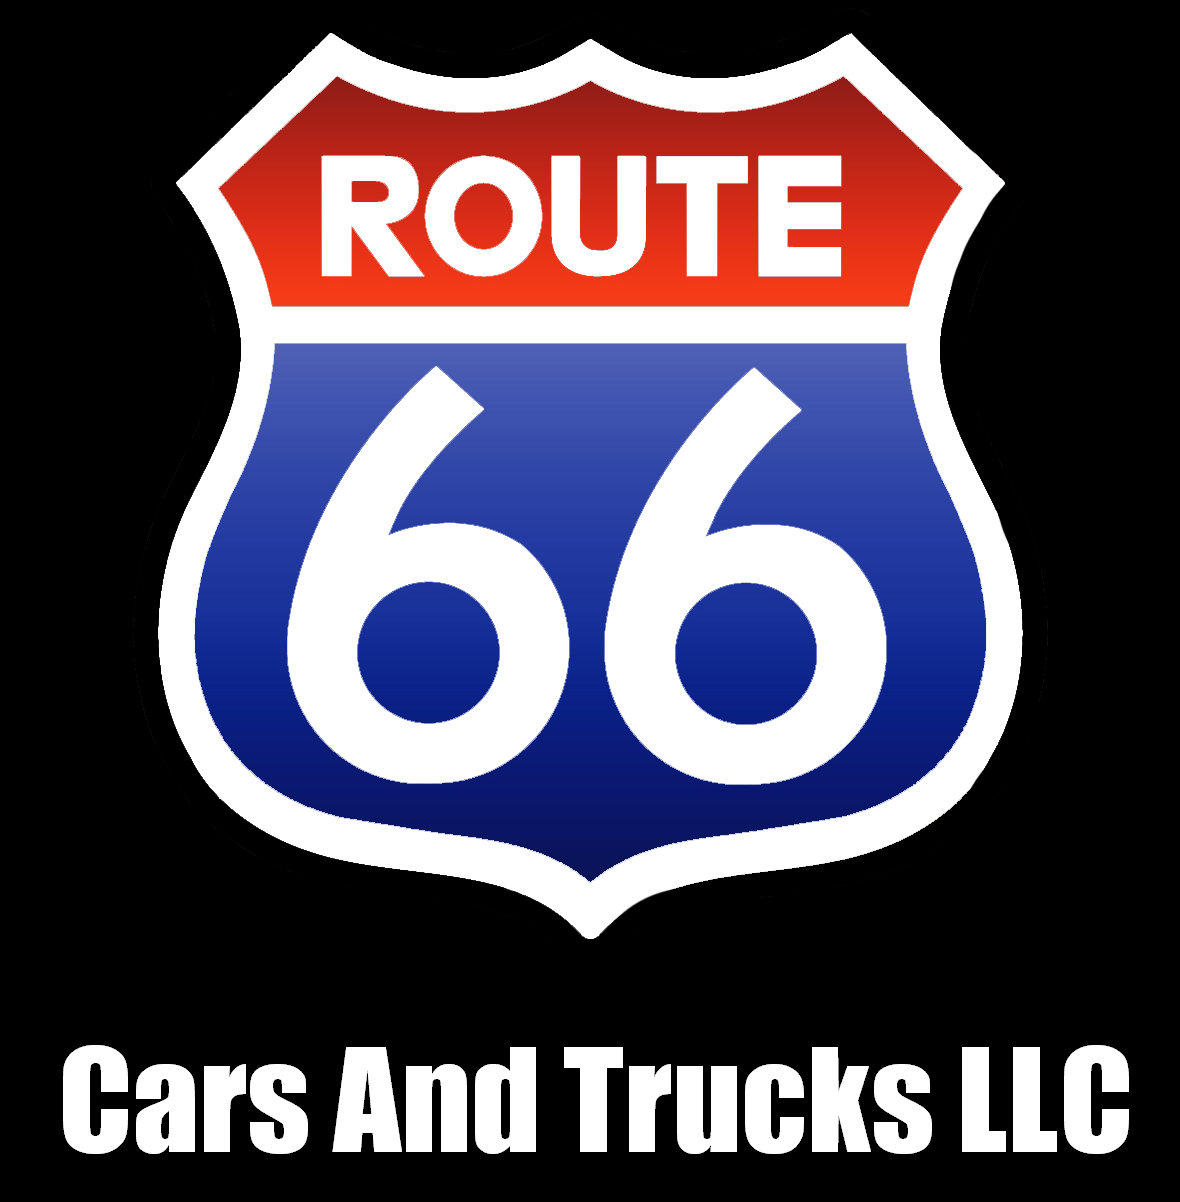 home - route 66 cars and trucks llc